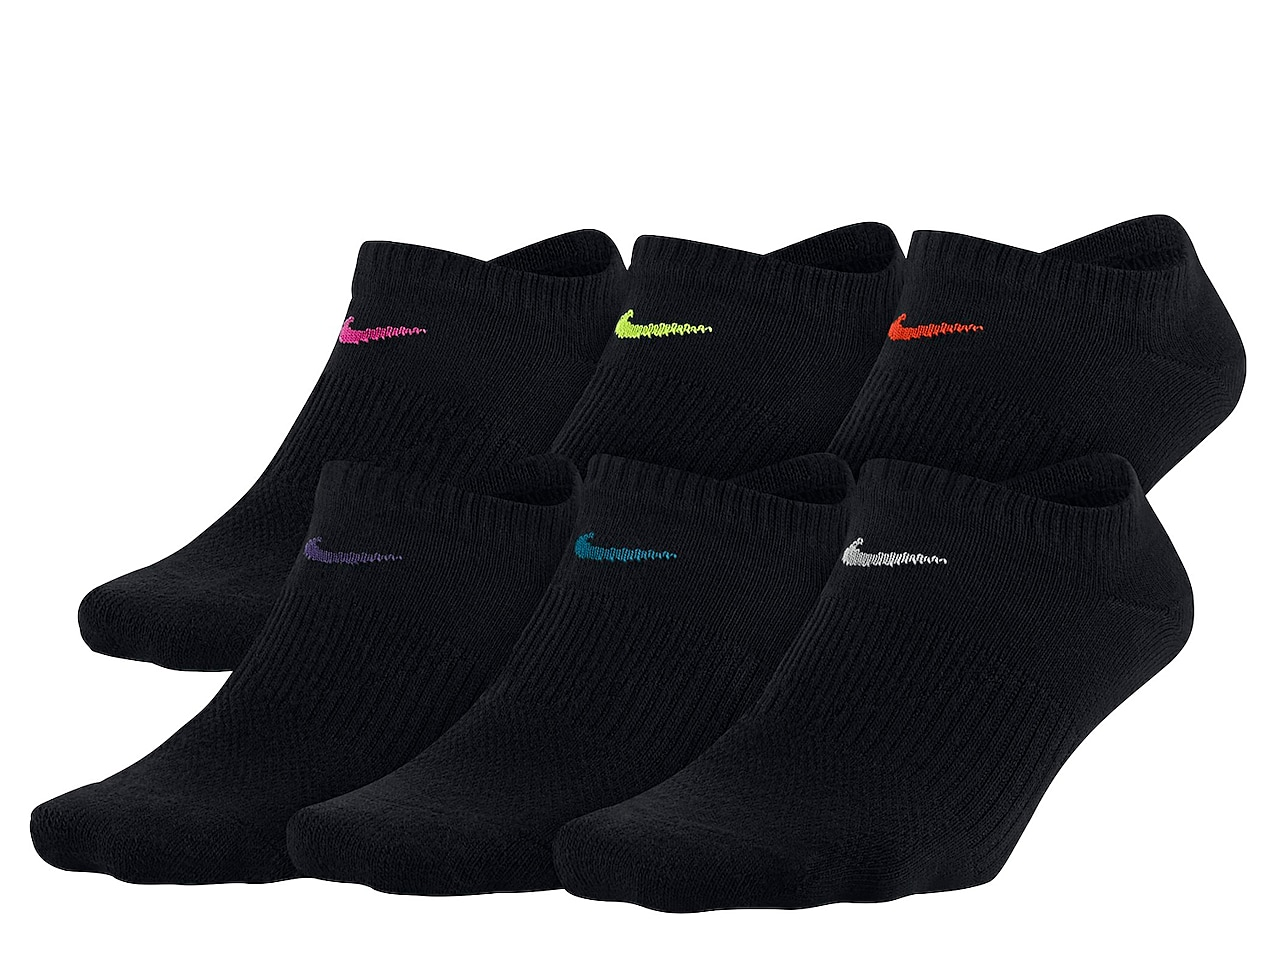 Performance Lightweight Women's No Show Socks - 6 Pack